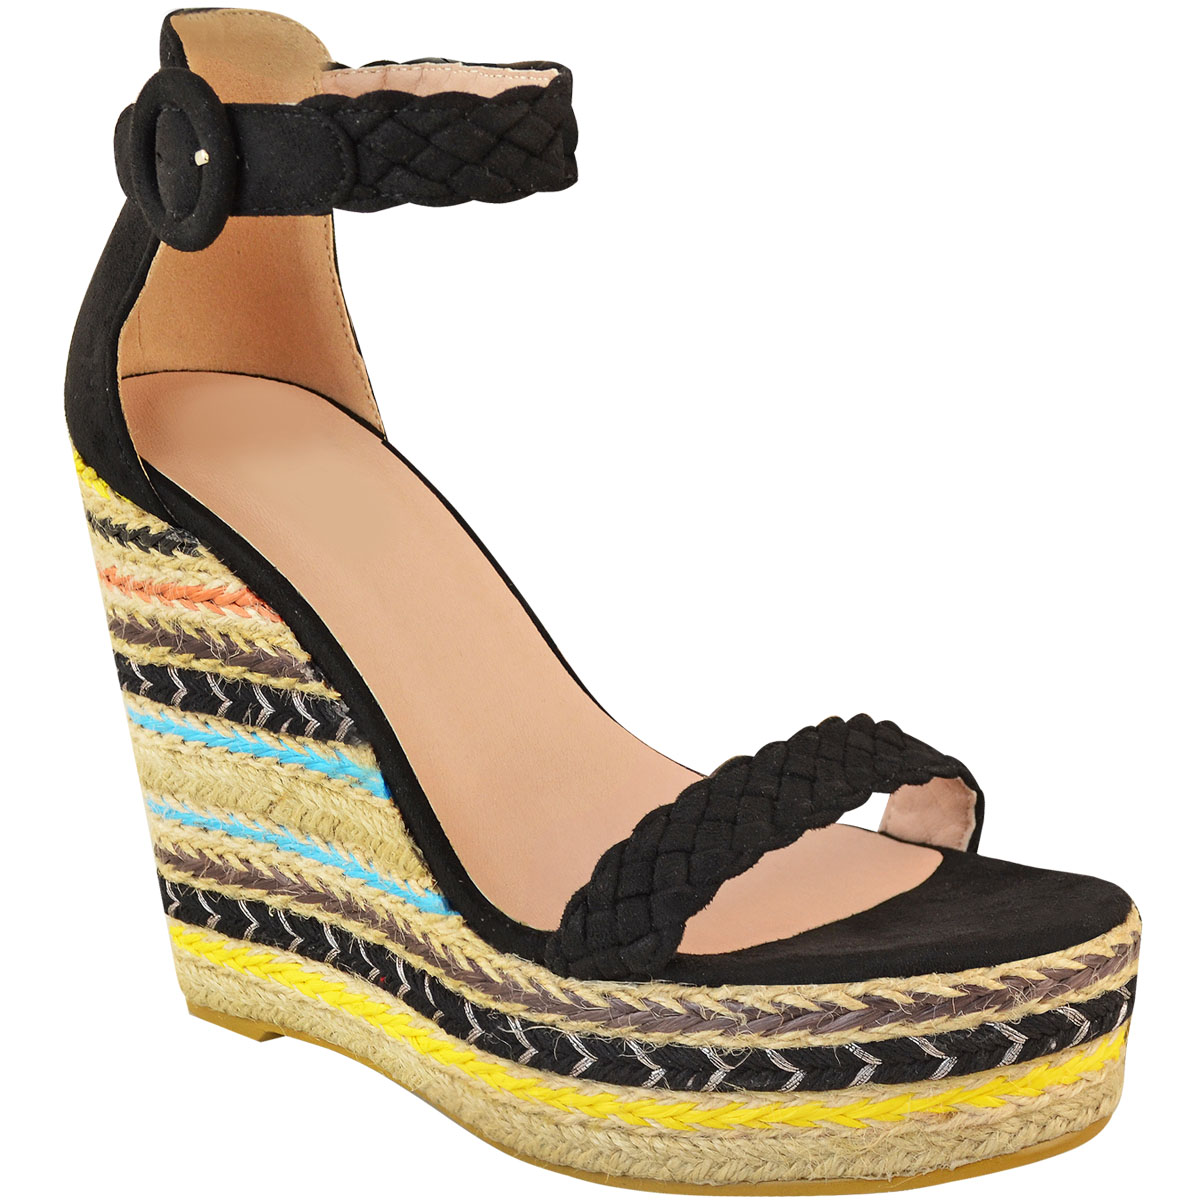 Womens-Ladies-Black-Wedge-Platforms-Sandals-High-Heels-Party-Summer-Shoes-Size thumbnail 3